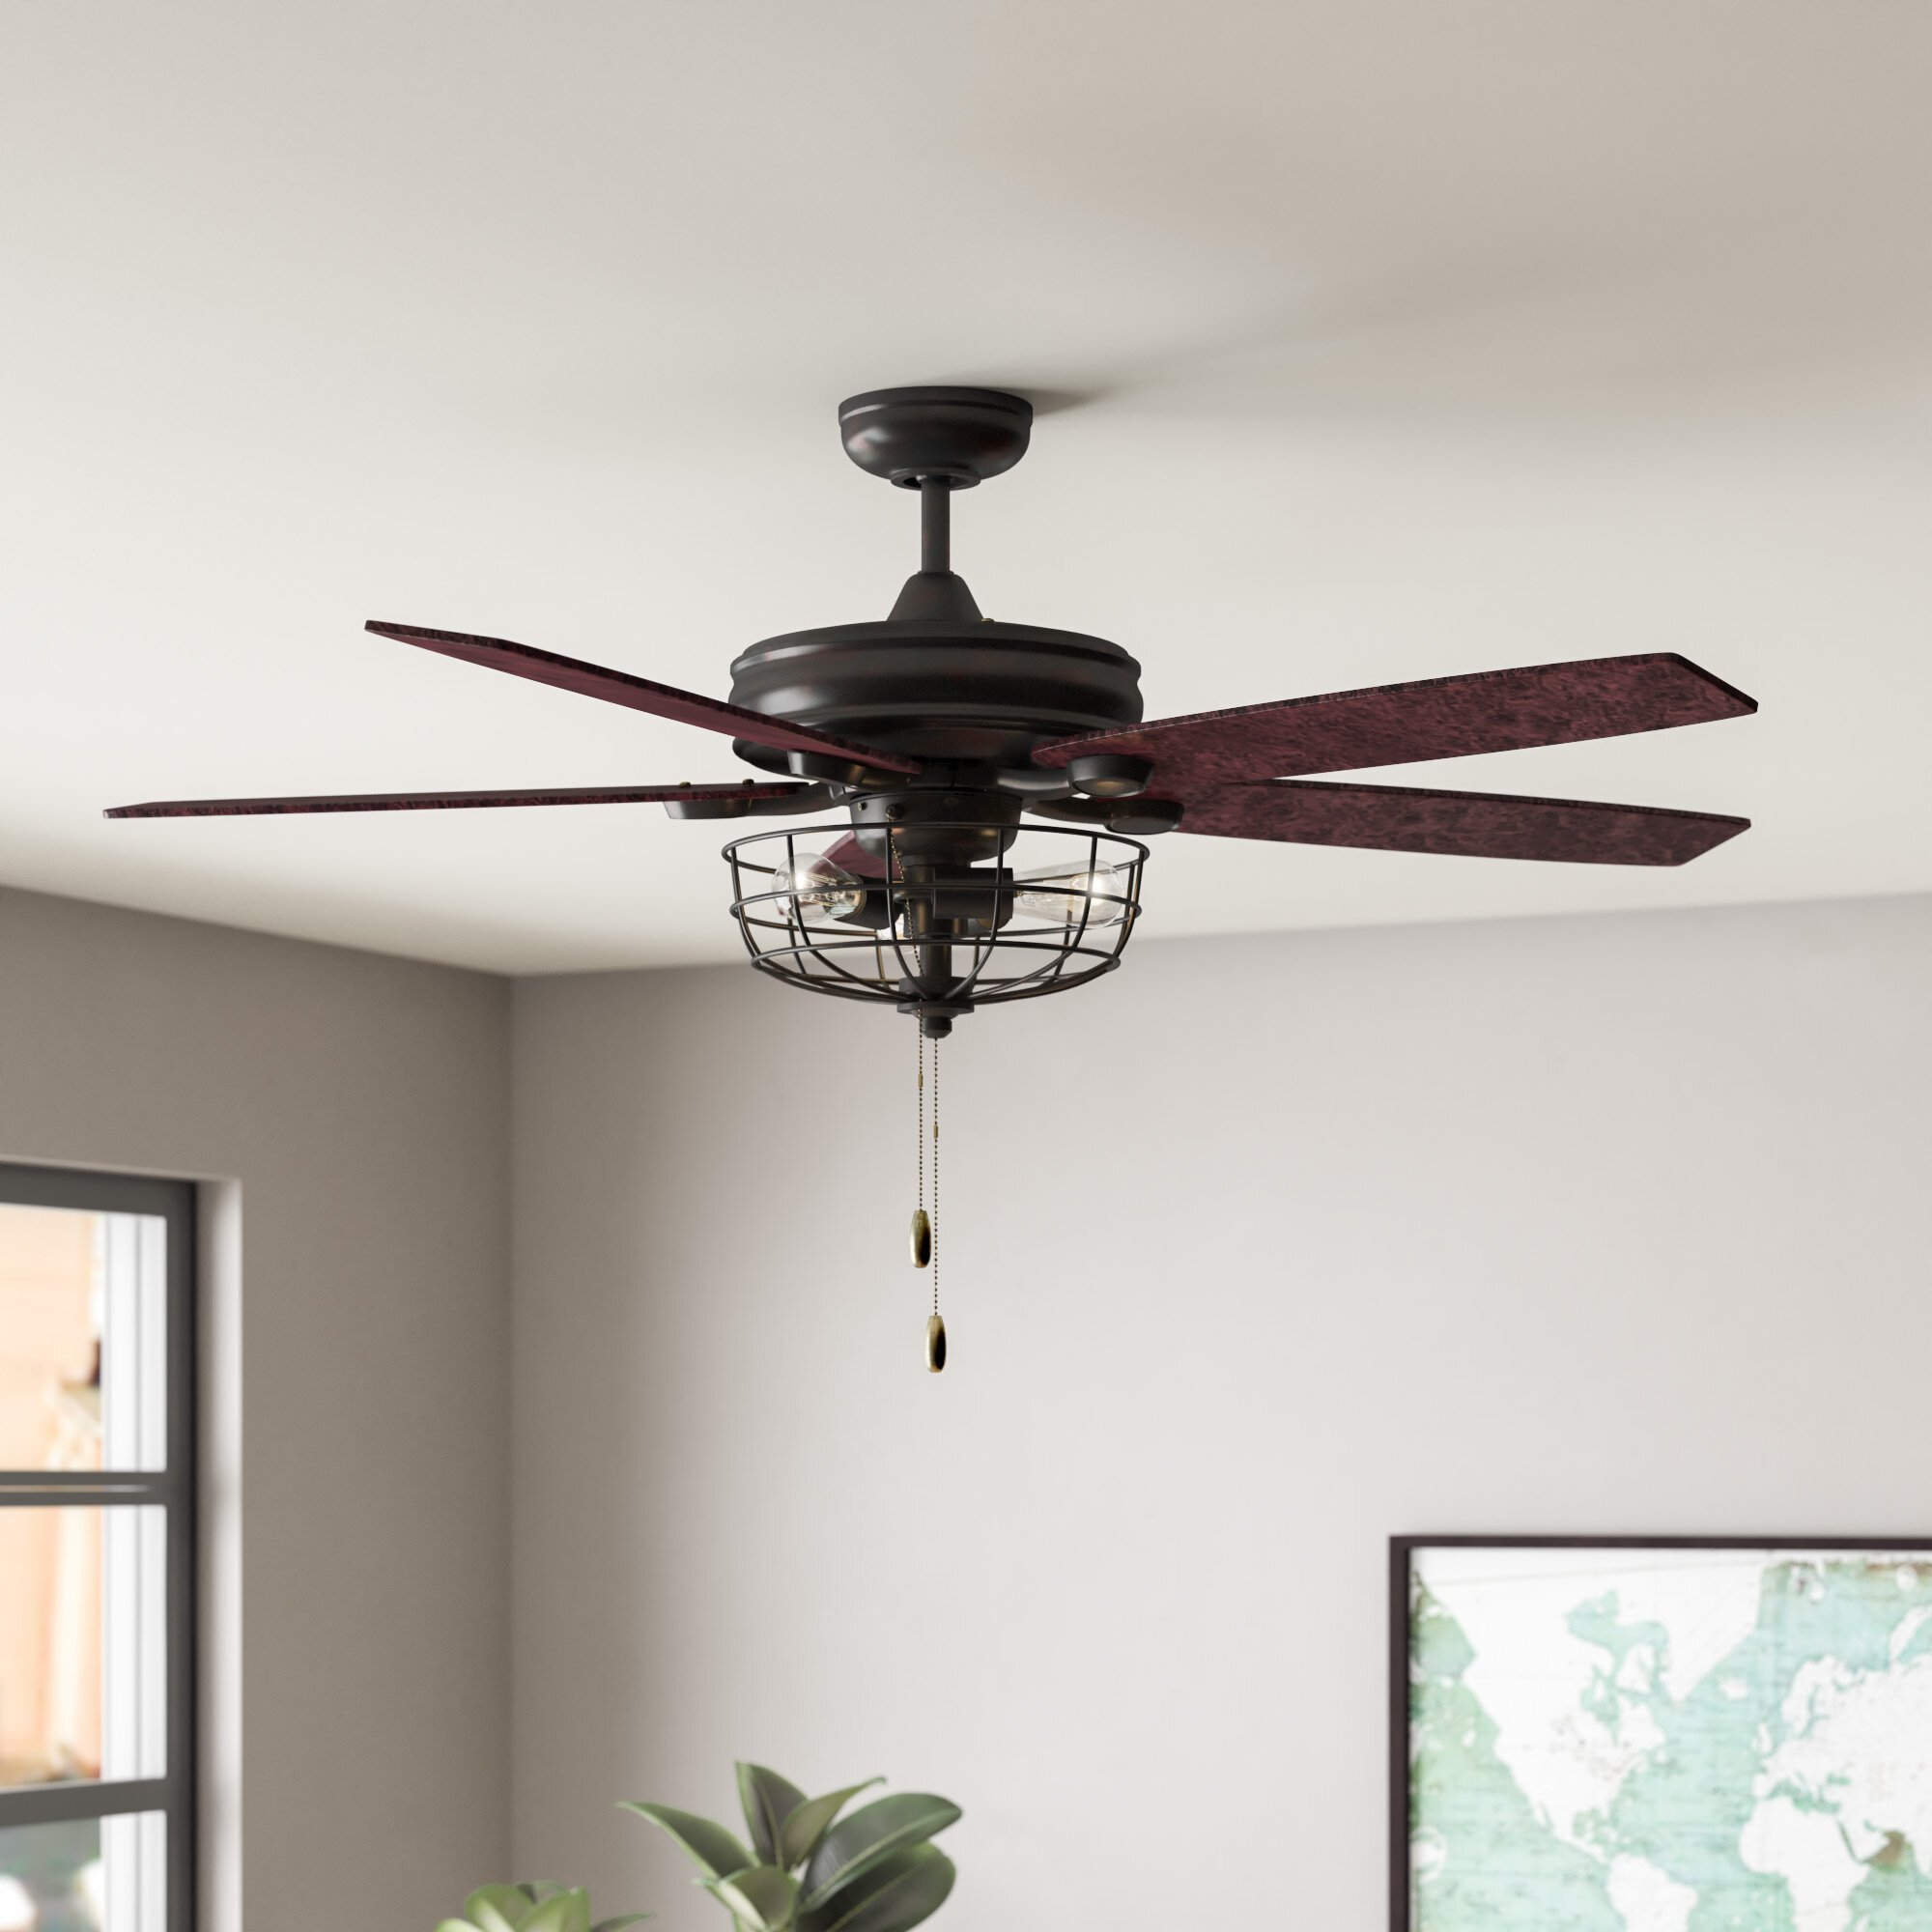 "Bedroom Ceiling Fans with Light Unique 52"" Glenpool 5 Blade Ceiling Fan Light Kit Included"